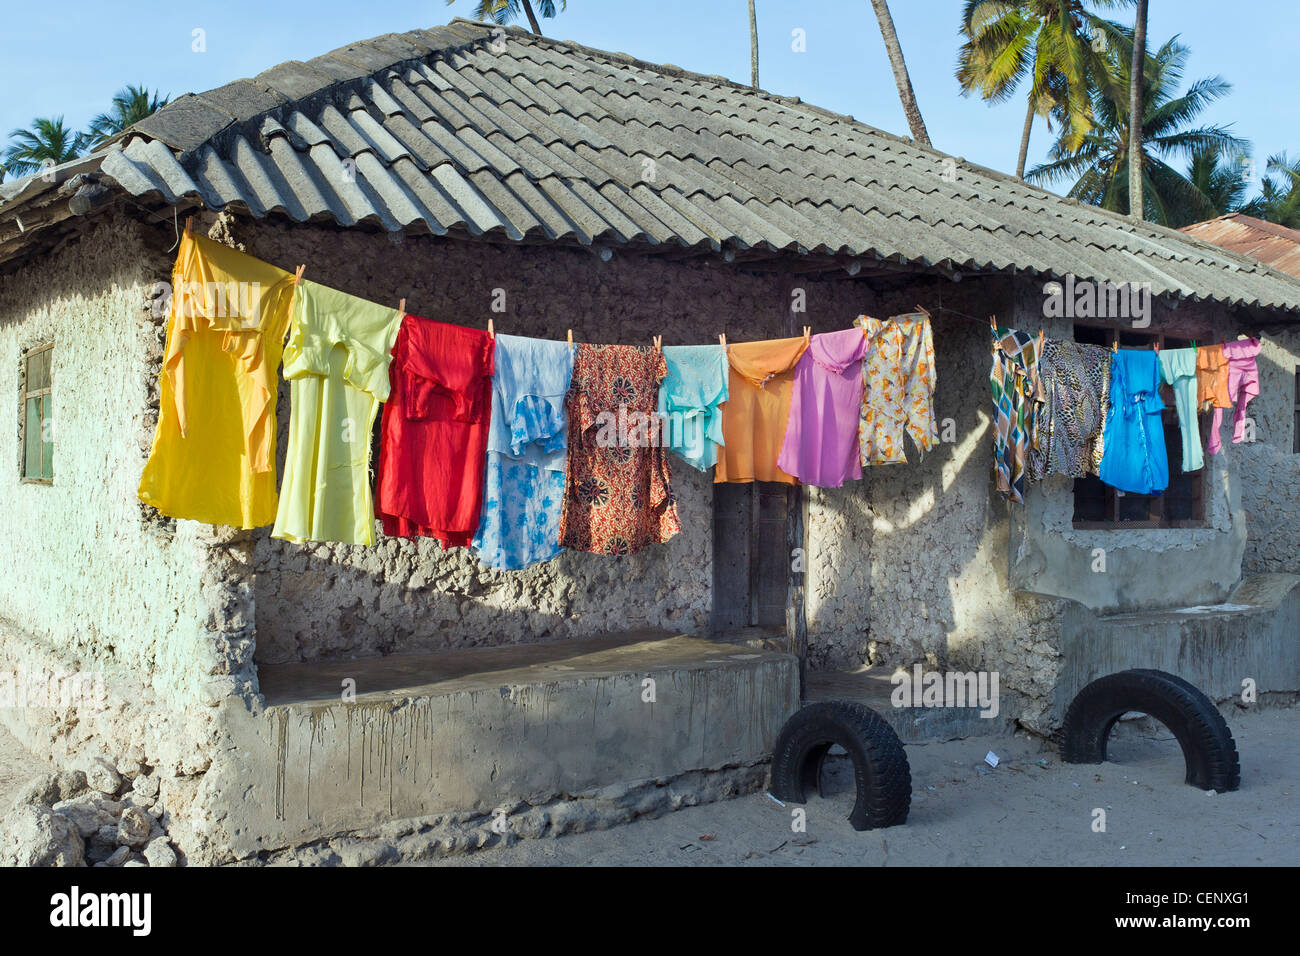 Laundry hanging on a clothesline in front a house in Bwejuu village east coast of Zanzibar Tanzania - Stock Image